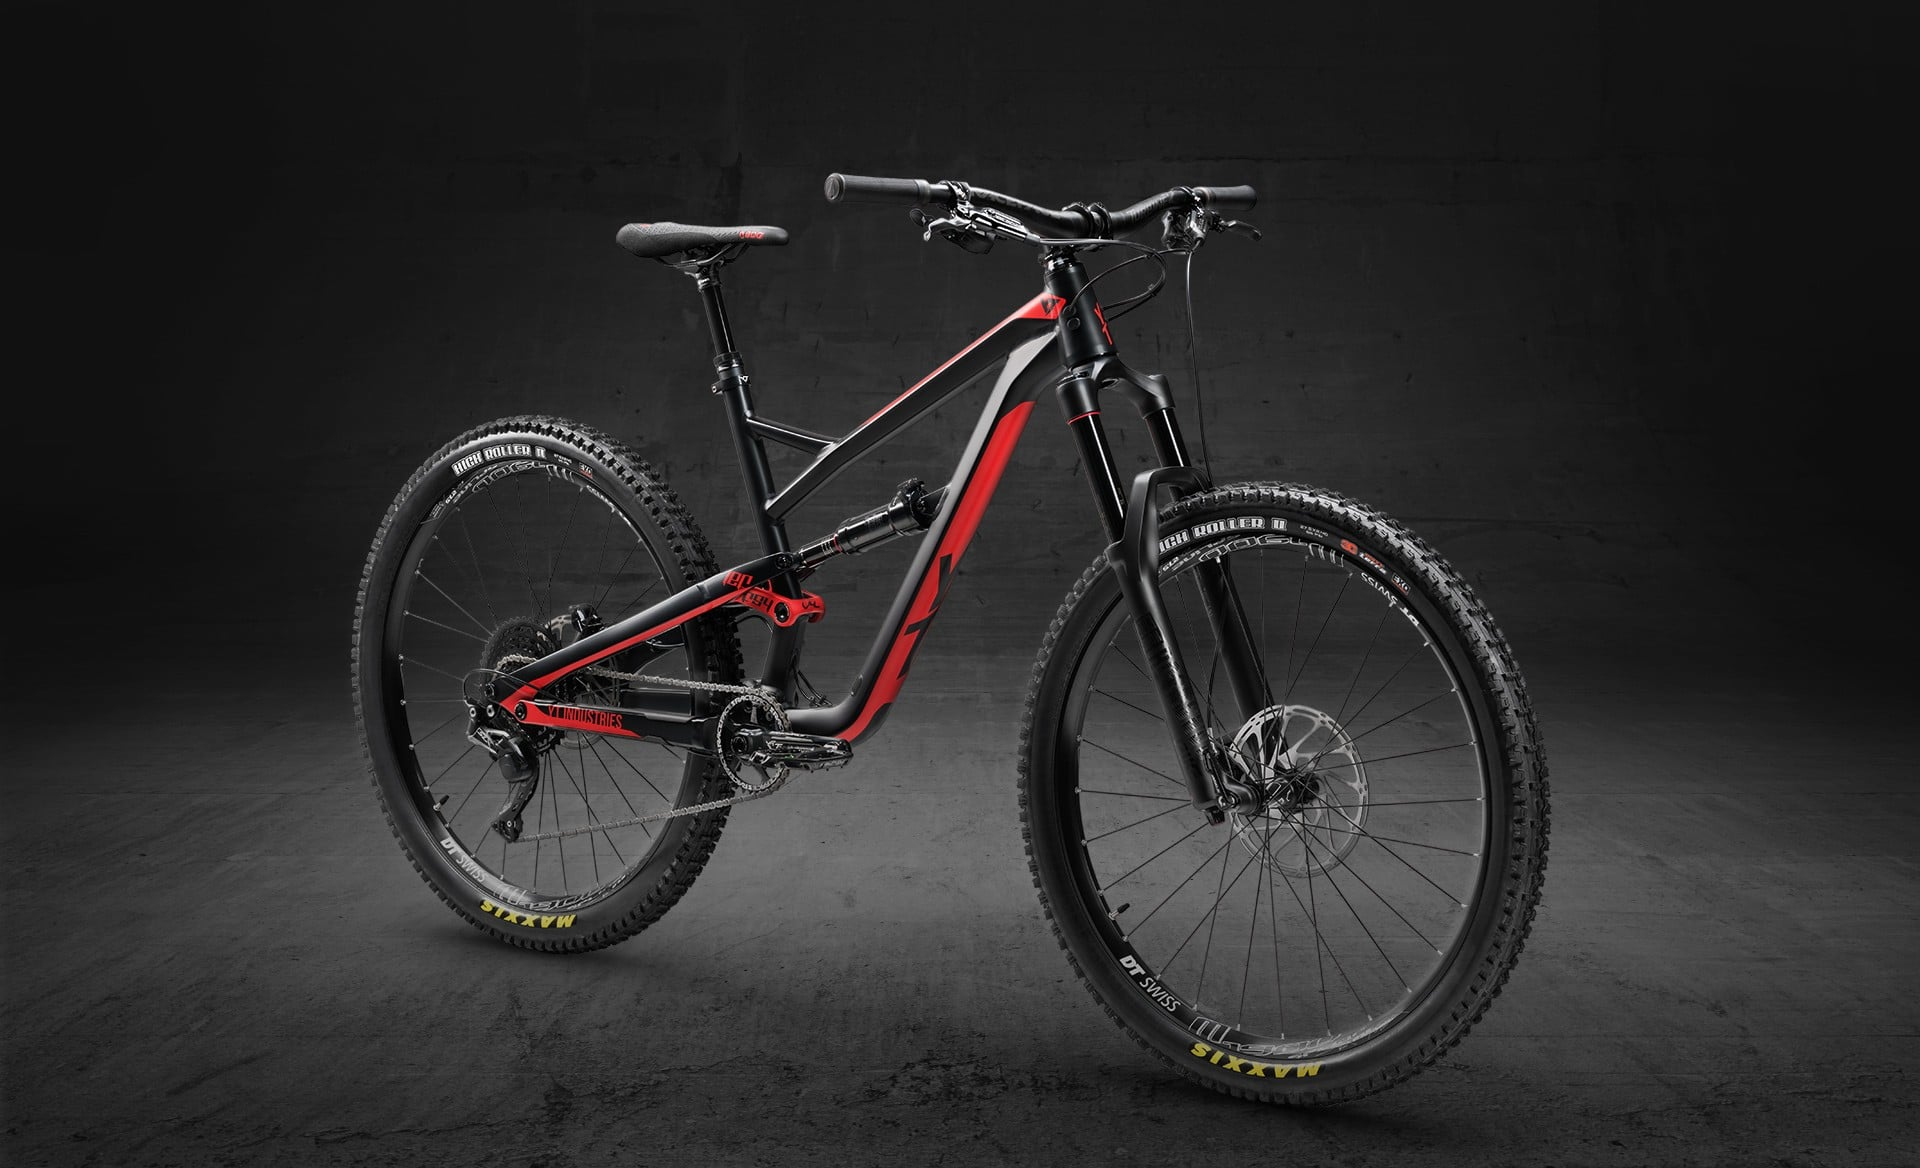 YT Industries Jeffsy Mountain Bike $2k-$2.8k - XL frames only